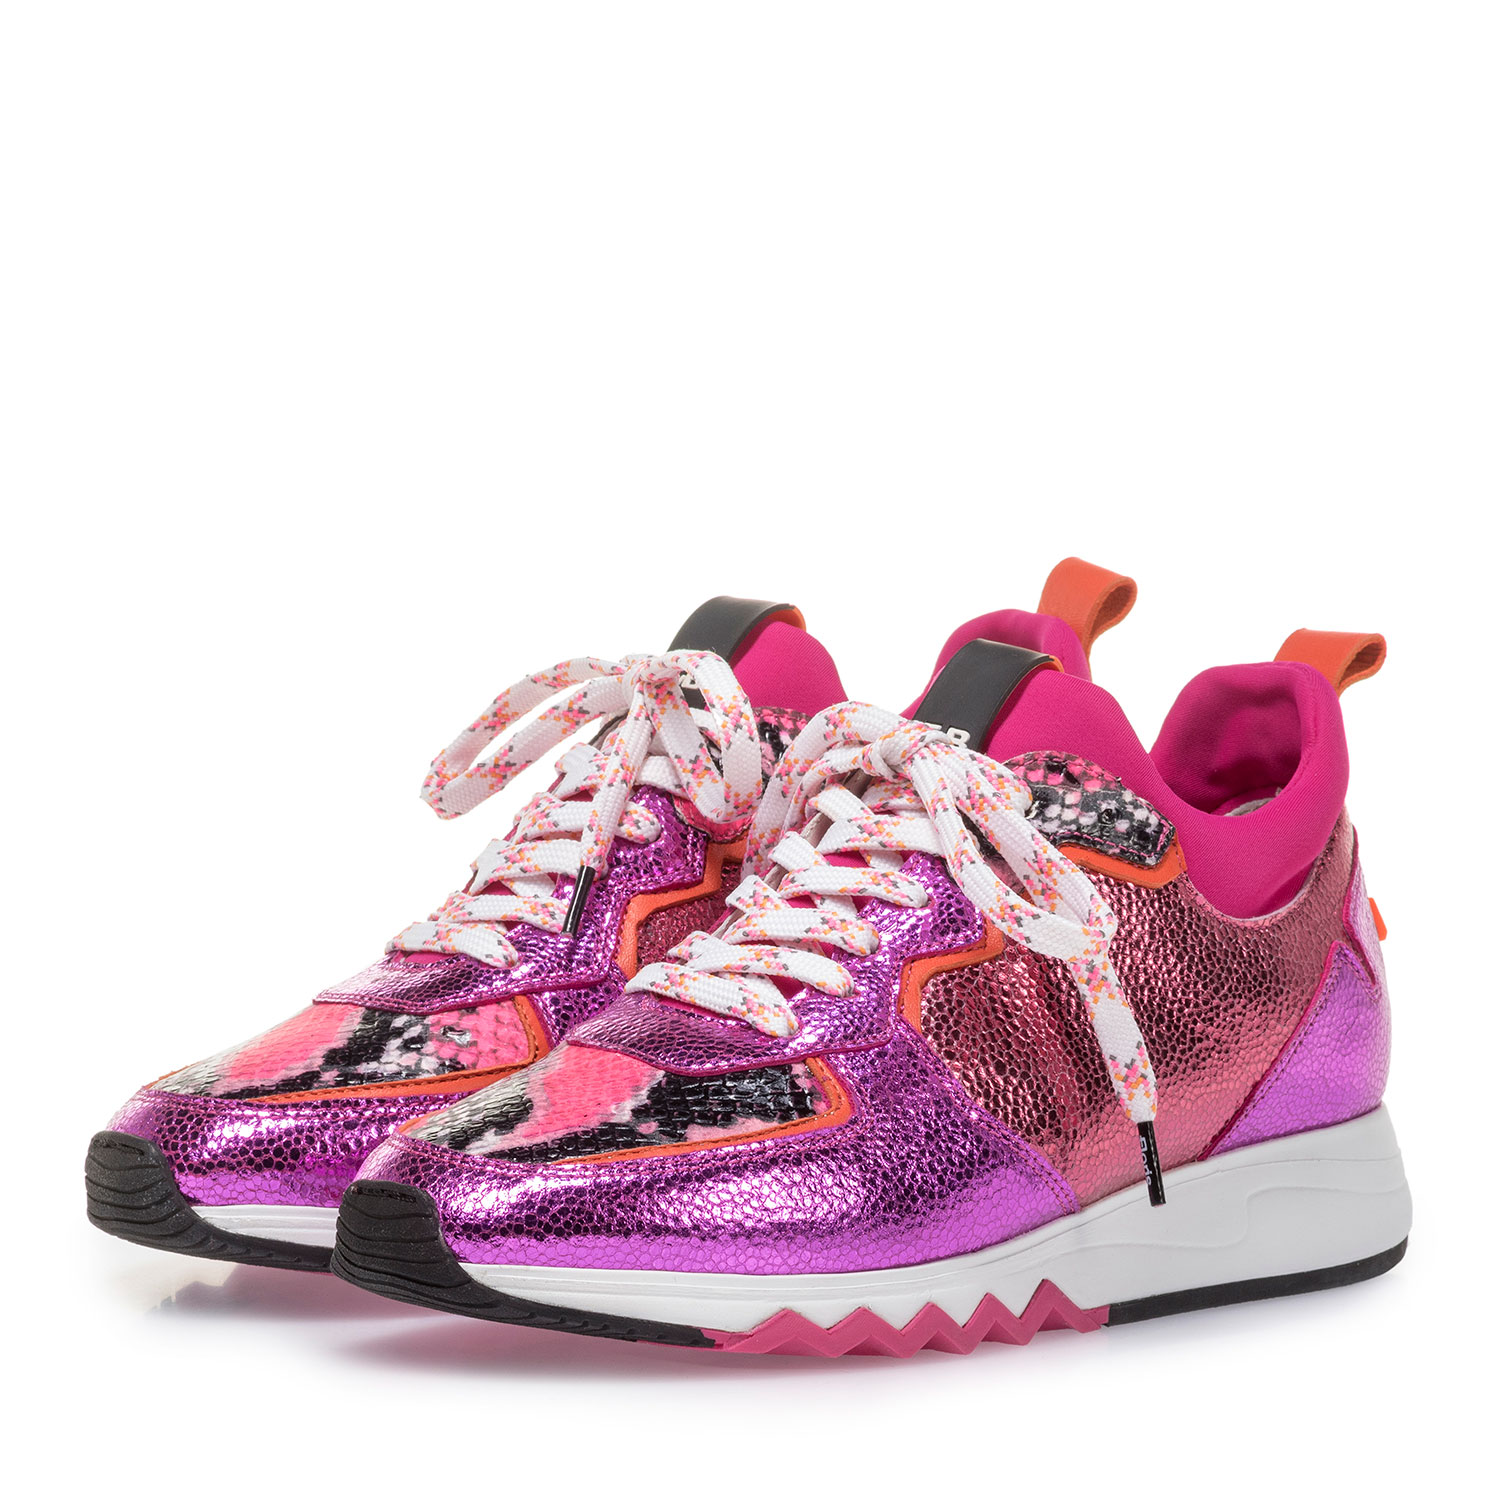 85309/07 - Sneaker with red and pink metallic print